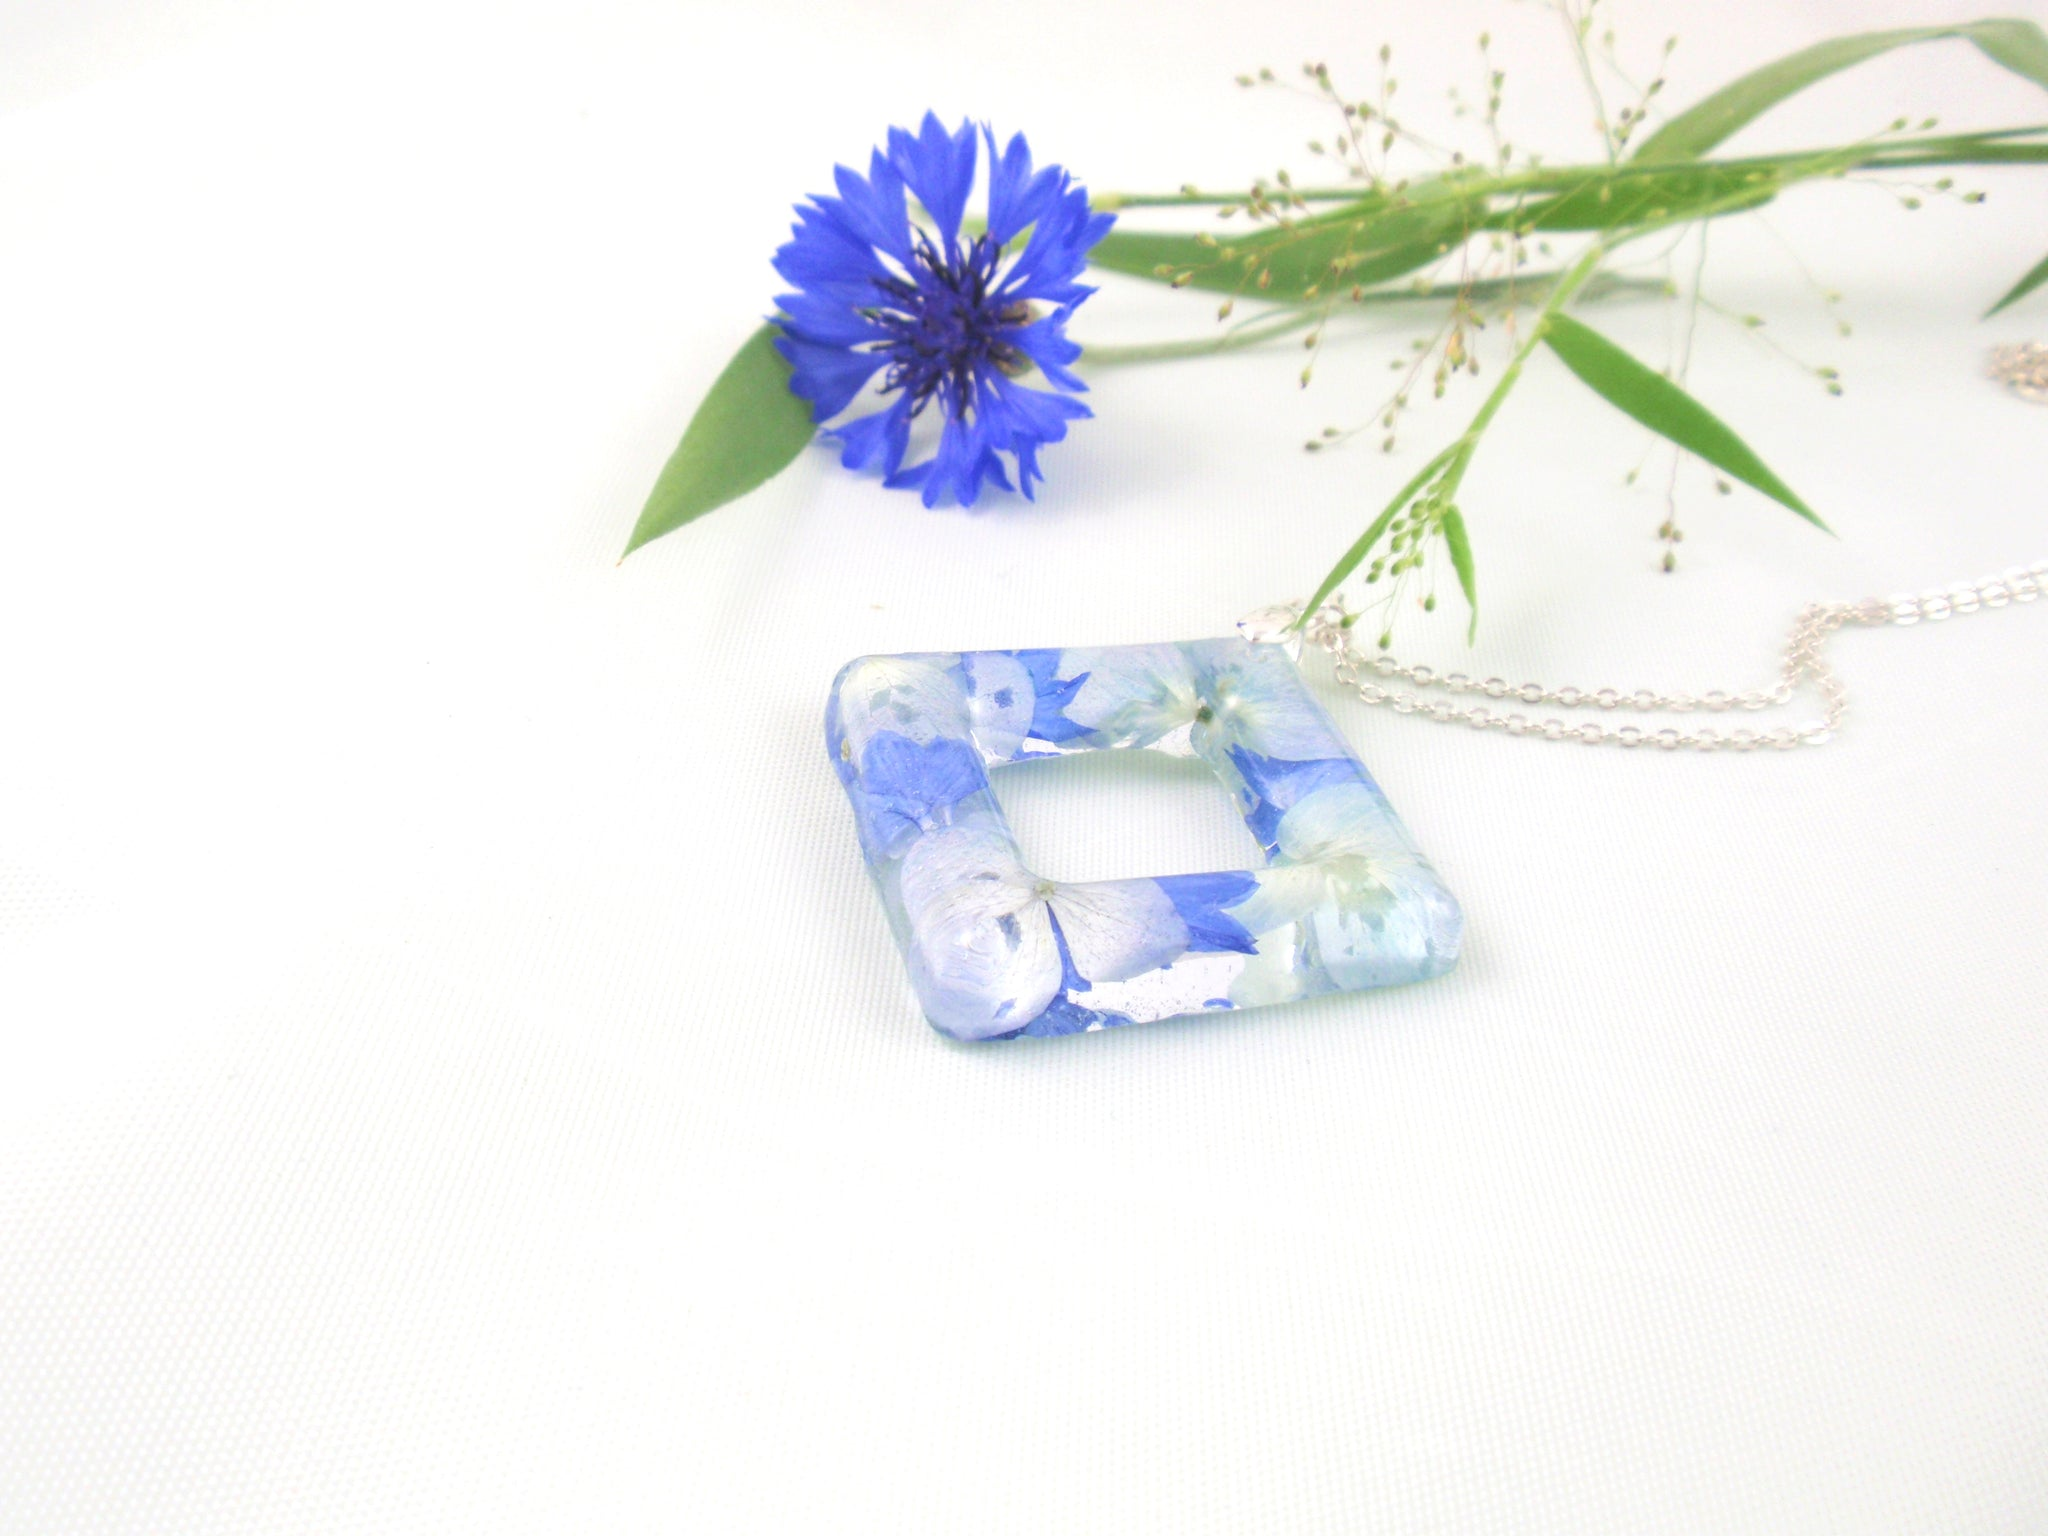 Handmade Blue Hydrangea flowers necklace, Nature jewelry